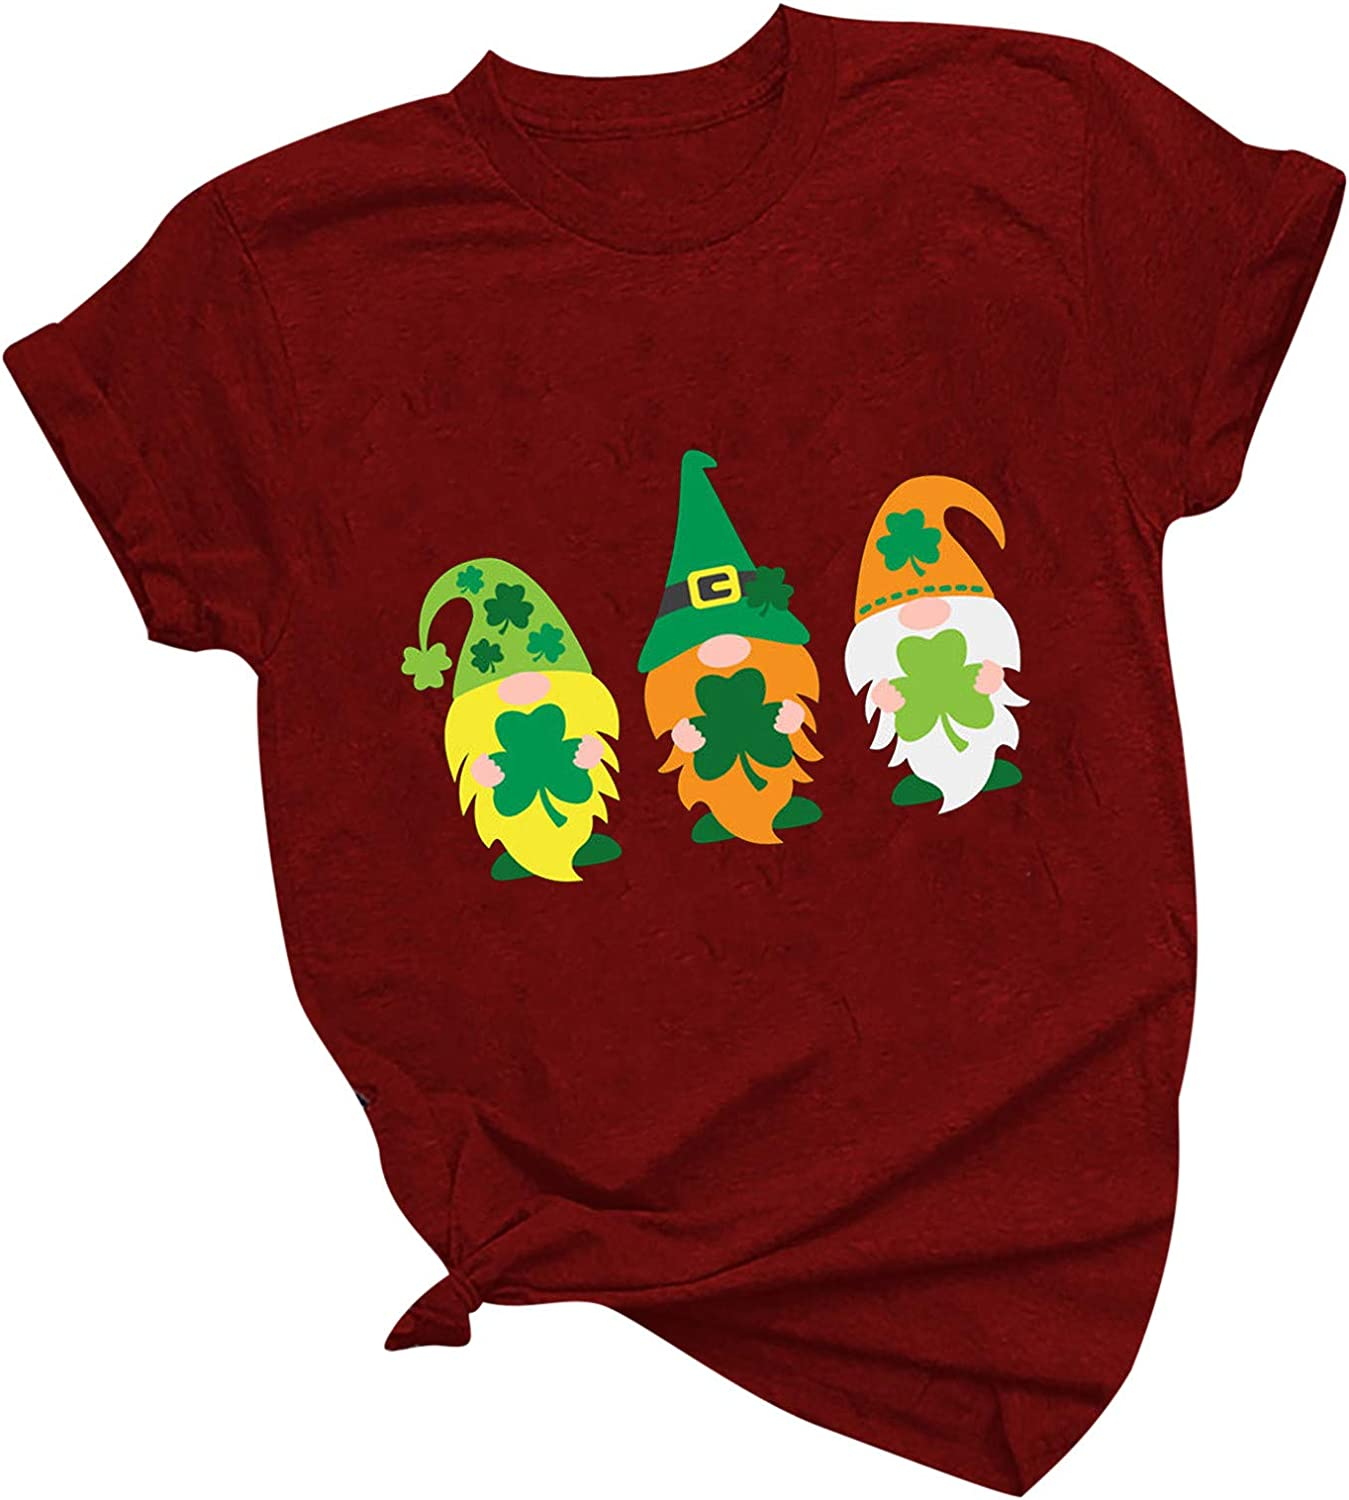 Tenworld Max 57% OFF B Womens Funny St Patricks Green Graphic Easy-to-use Day Shirts Tee